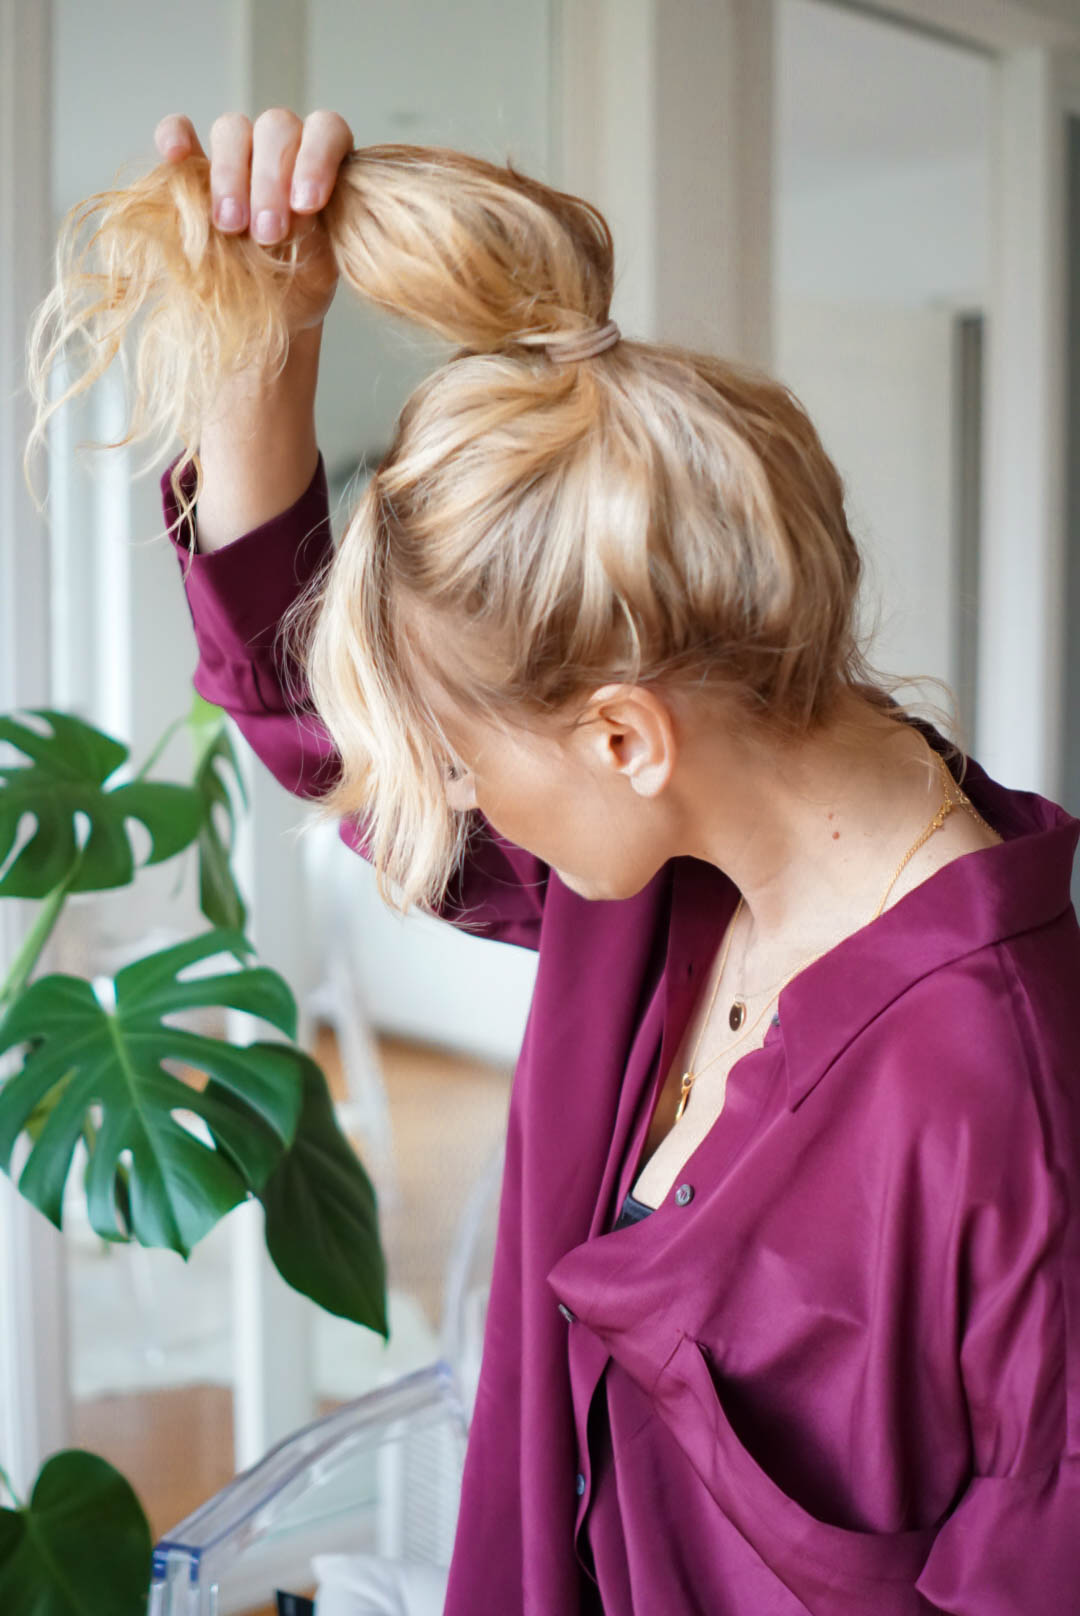 Dutt_machen-Aleitung-Video-perfekter messy Bun-Nowshine Haare-Ü40 Beauty Blog